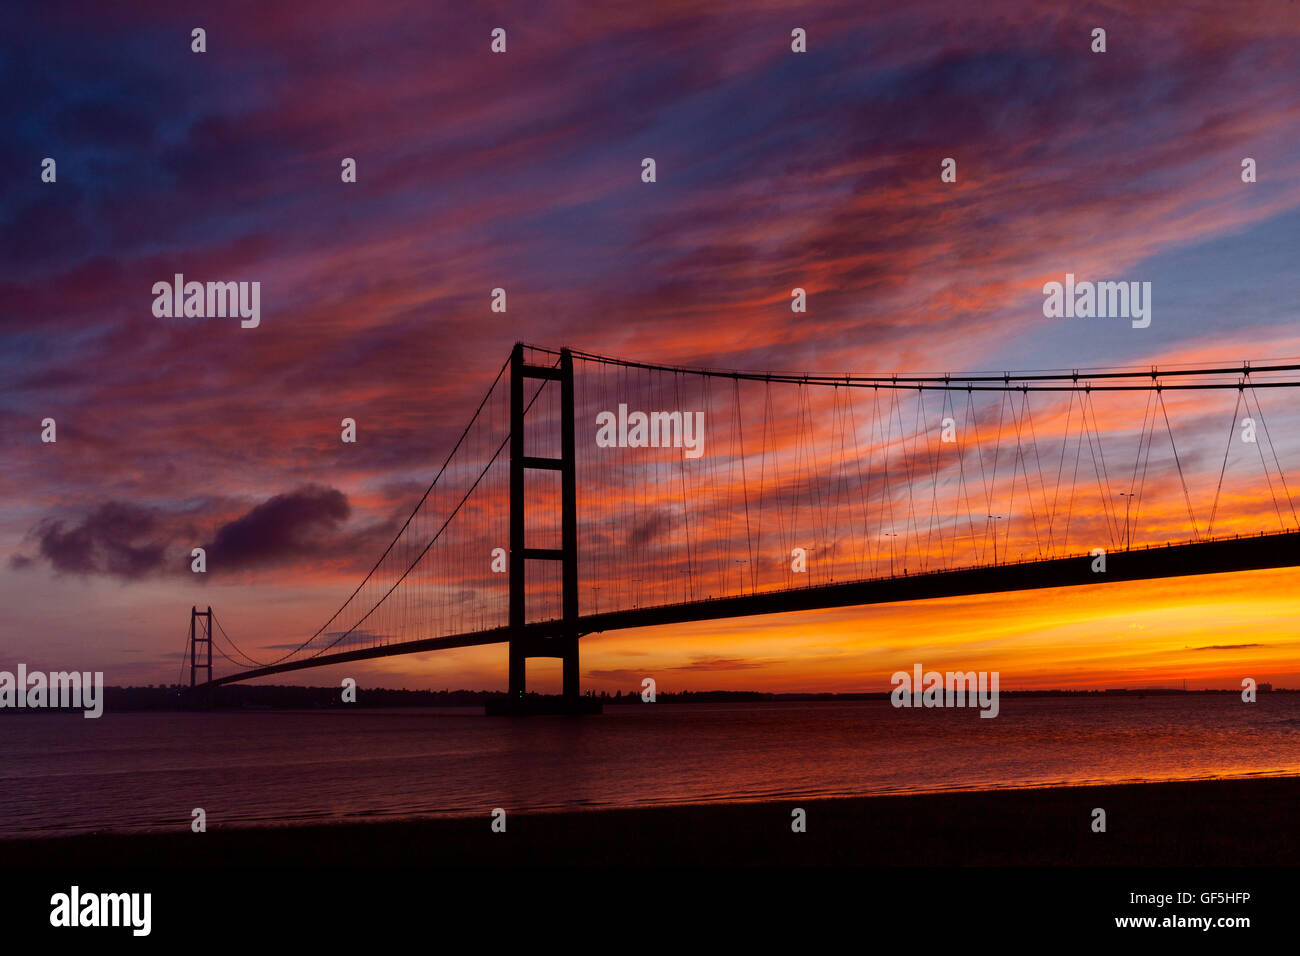 The Humber Bridge at sunrise. The bridge links Barton-upon-Humber in North Lincolnshire to Hessle in East Yorkshire. - Stock Image